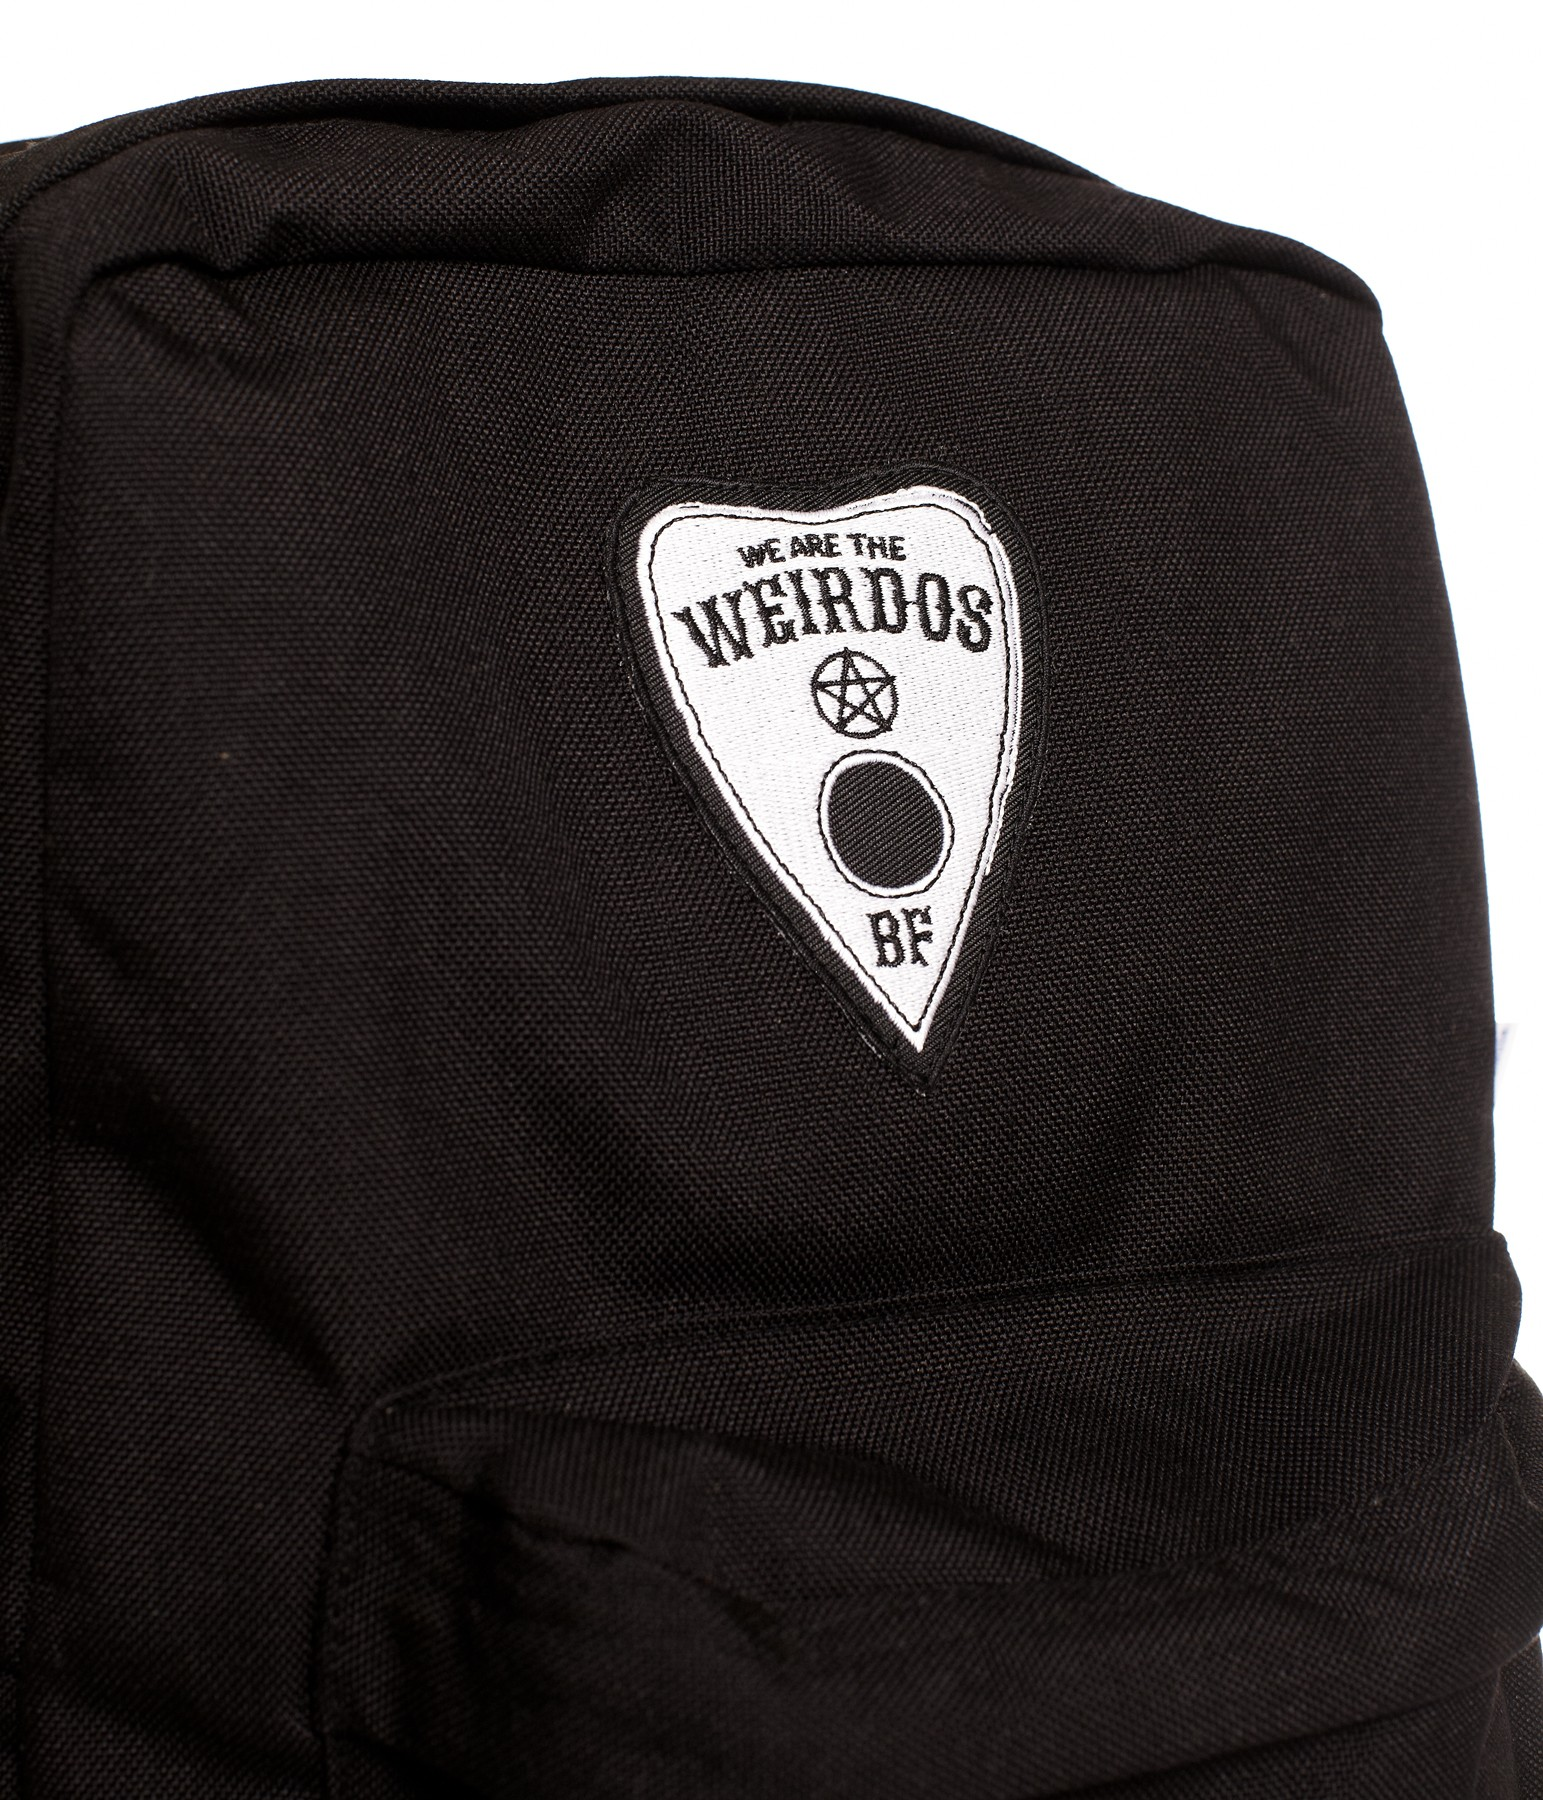 We Are The Weirdos - Backpack